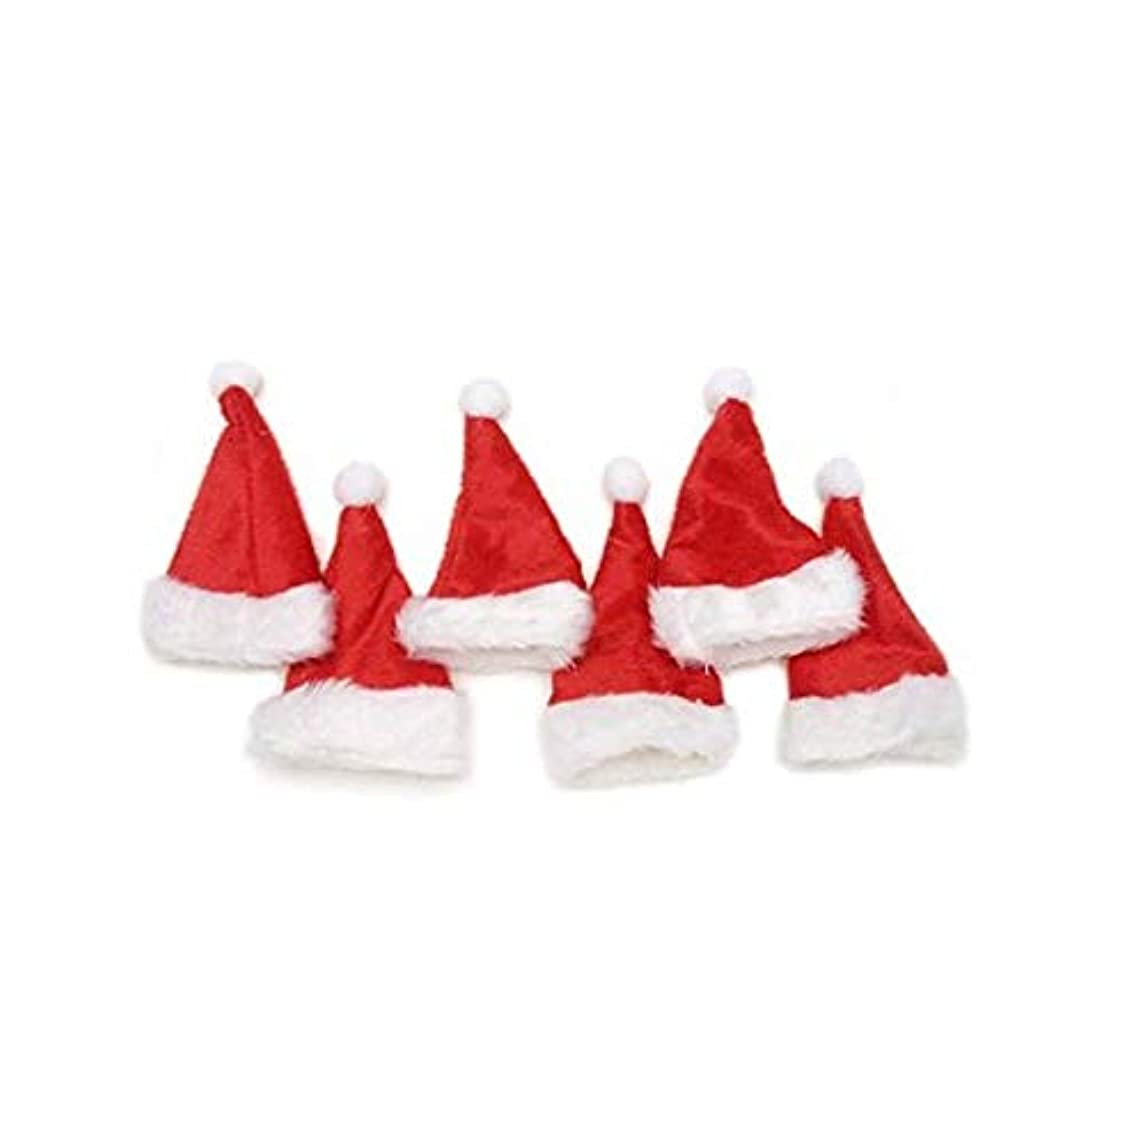 Mini Christmas Hat Red and White 5 1/2 Inches Tall X 3 Inches Wide X 6 Pieces Per Package 2510-409